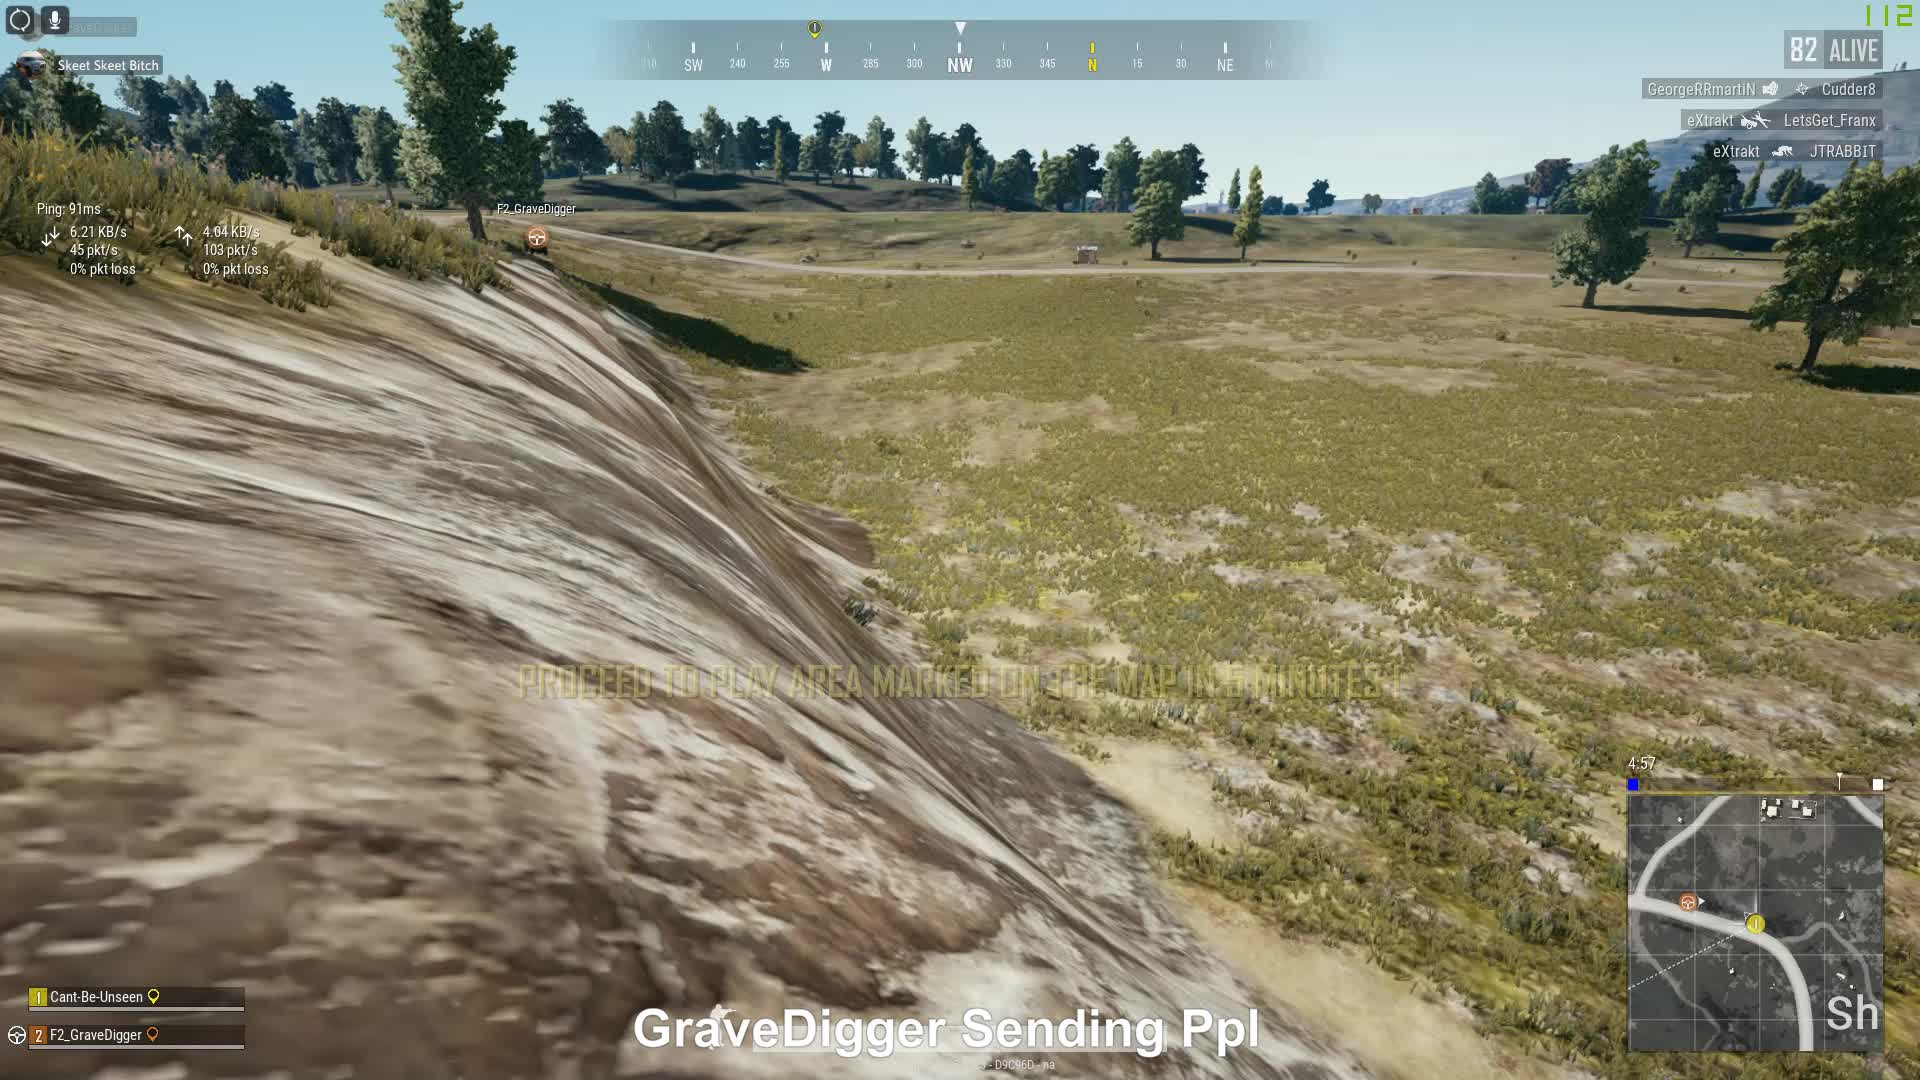 pubattlegrounds, pubg, GraveDigger Launching Someone GIFs